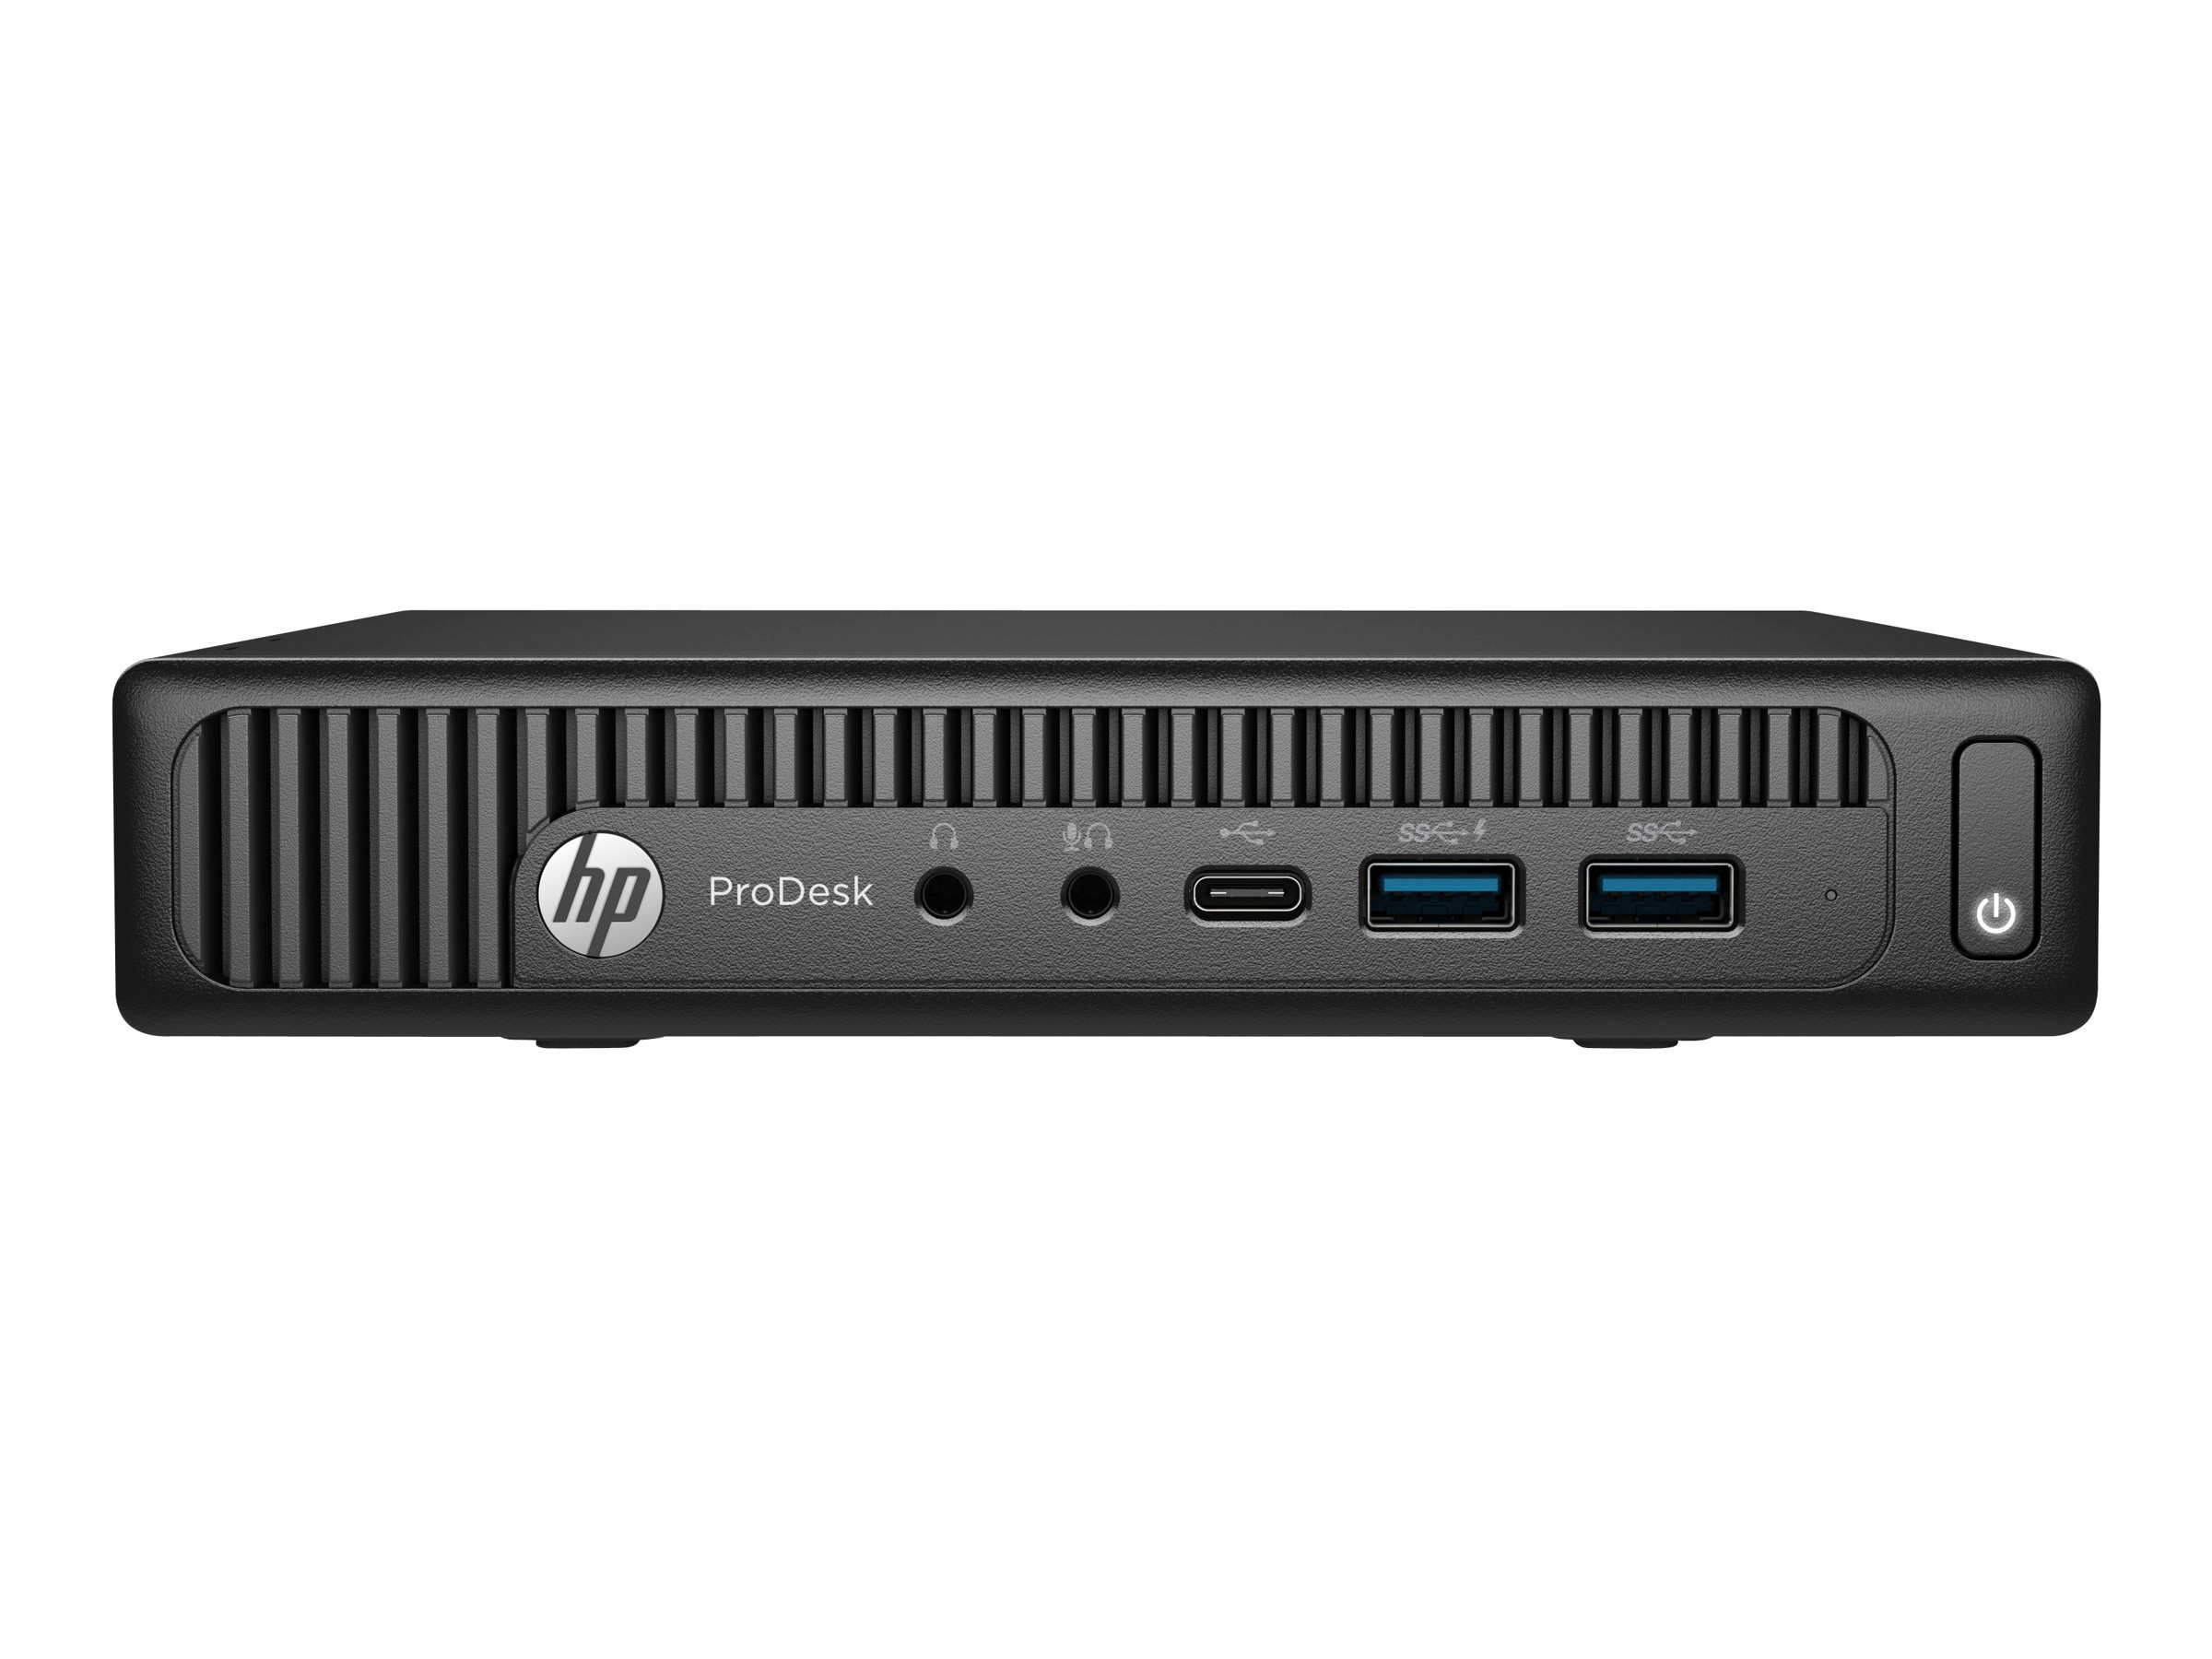 HP ProDesk 600 G2 2.5GHz Core i5 8GB RAM 500GB hard drive